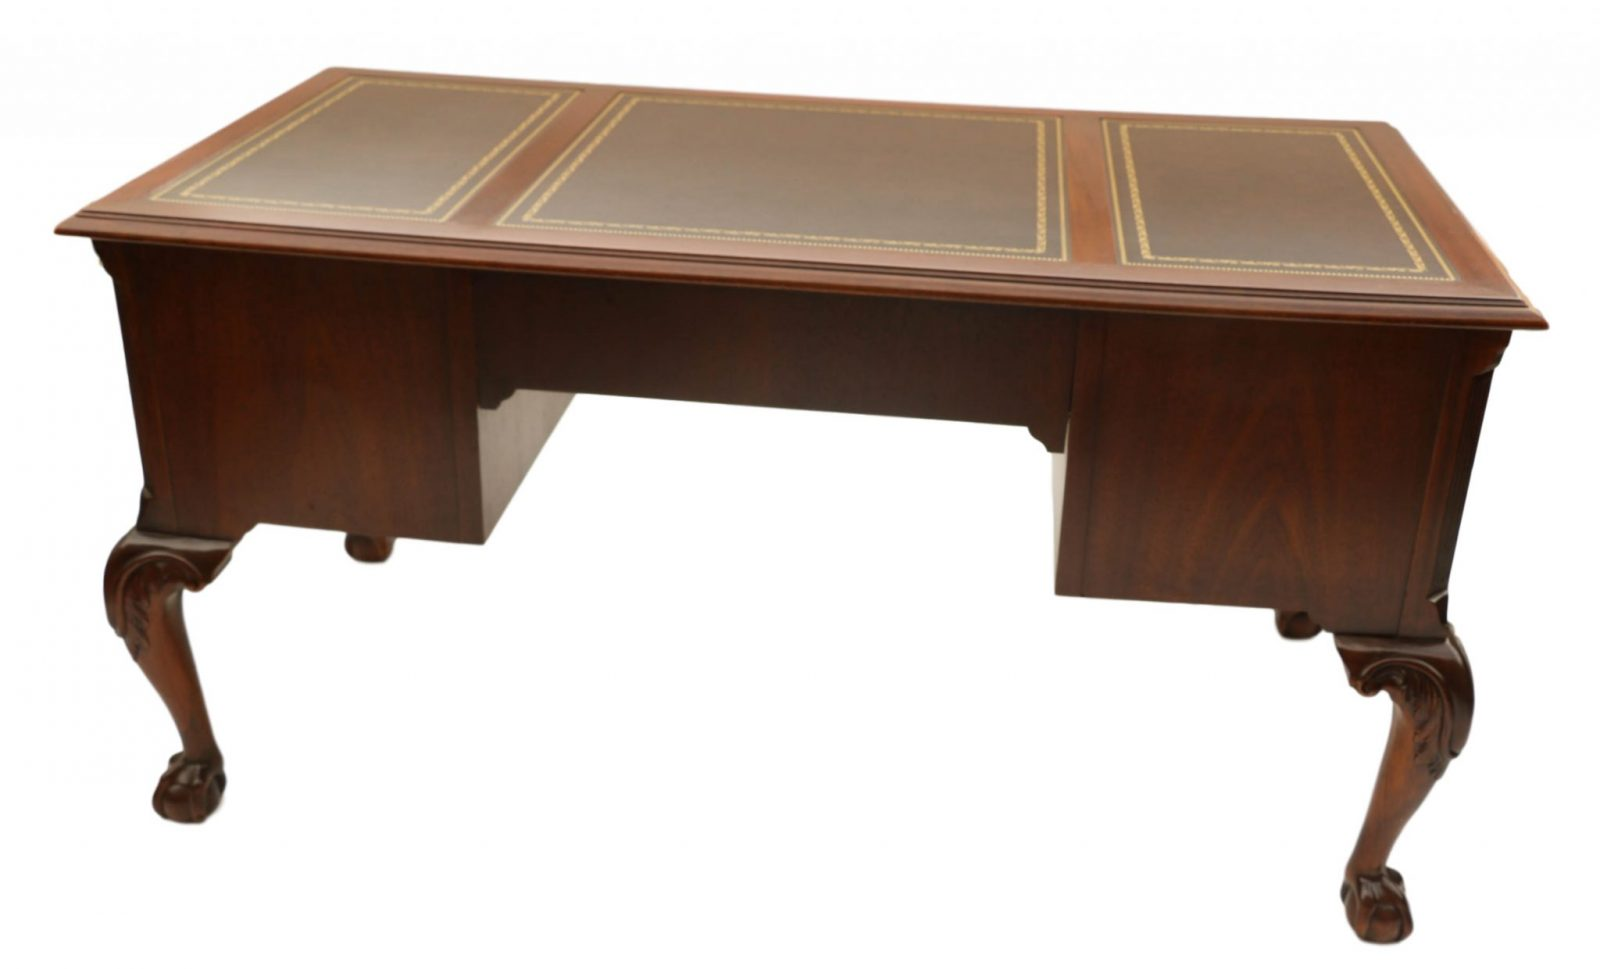 bhp vtg wheels ebay caster shelf end desk leather drawer side wood hekman top table mahogany furniture